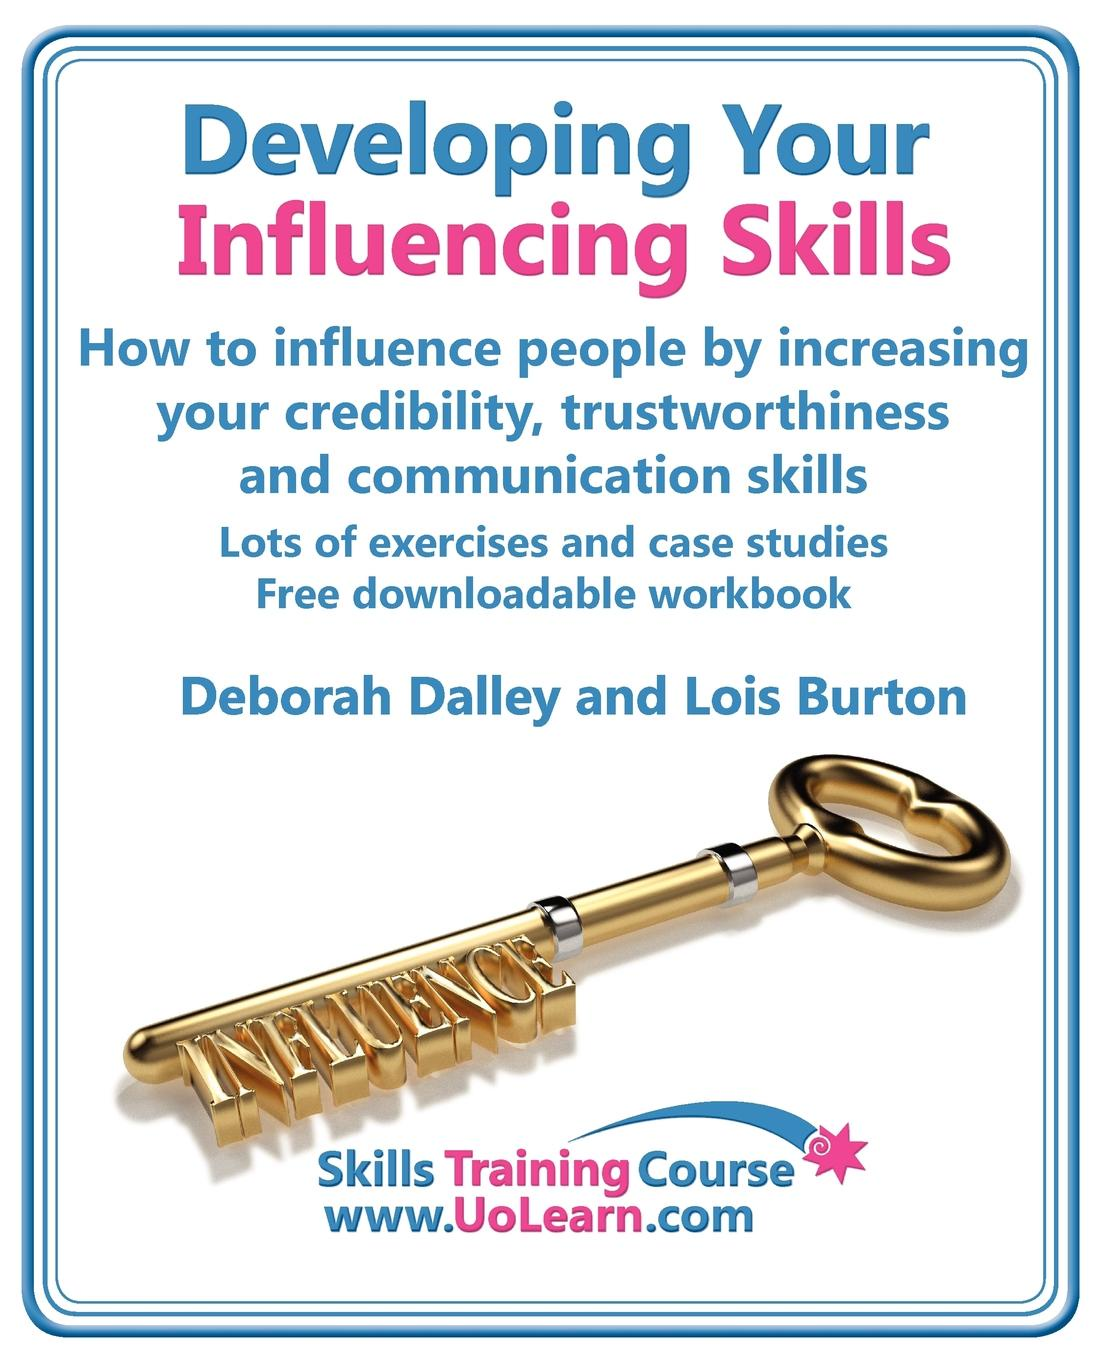 Фото - Deborah Dalley, Lois Burton Developing Your Influencing Skills How to Influence People by Increasing Your Credibility, Trustworthiness and Communication Skills. Lots of Exercises philip hesketh how to persuade and influence people completely revised and updated edition of life s a game so fix the odds powerful techniques to get your own way more often